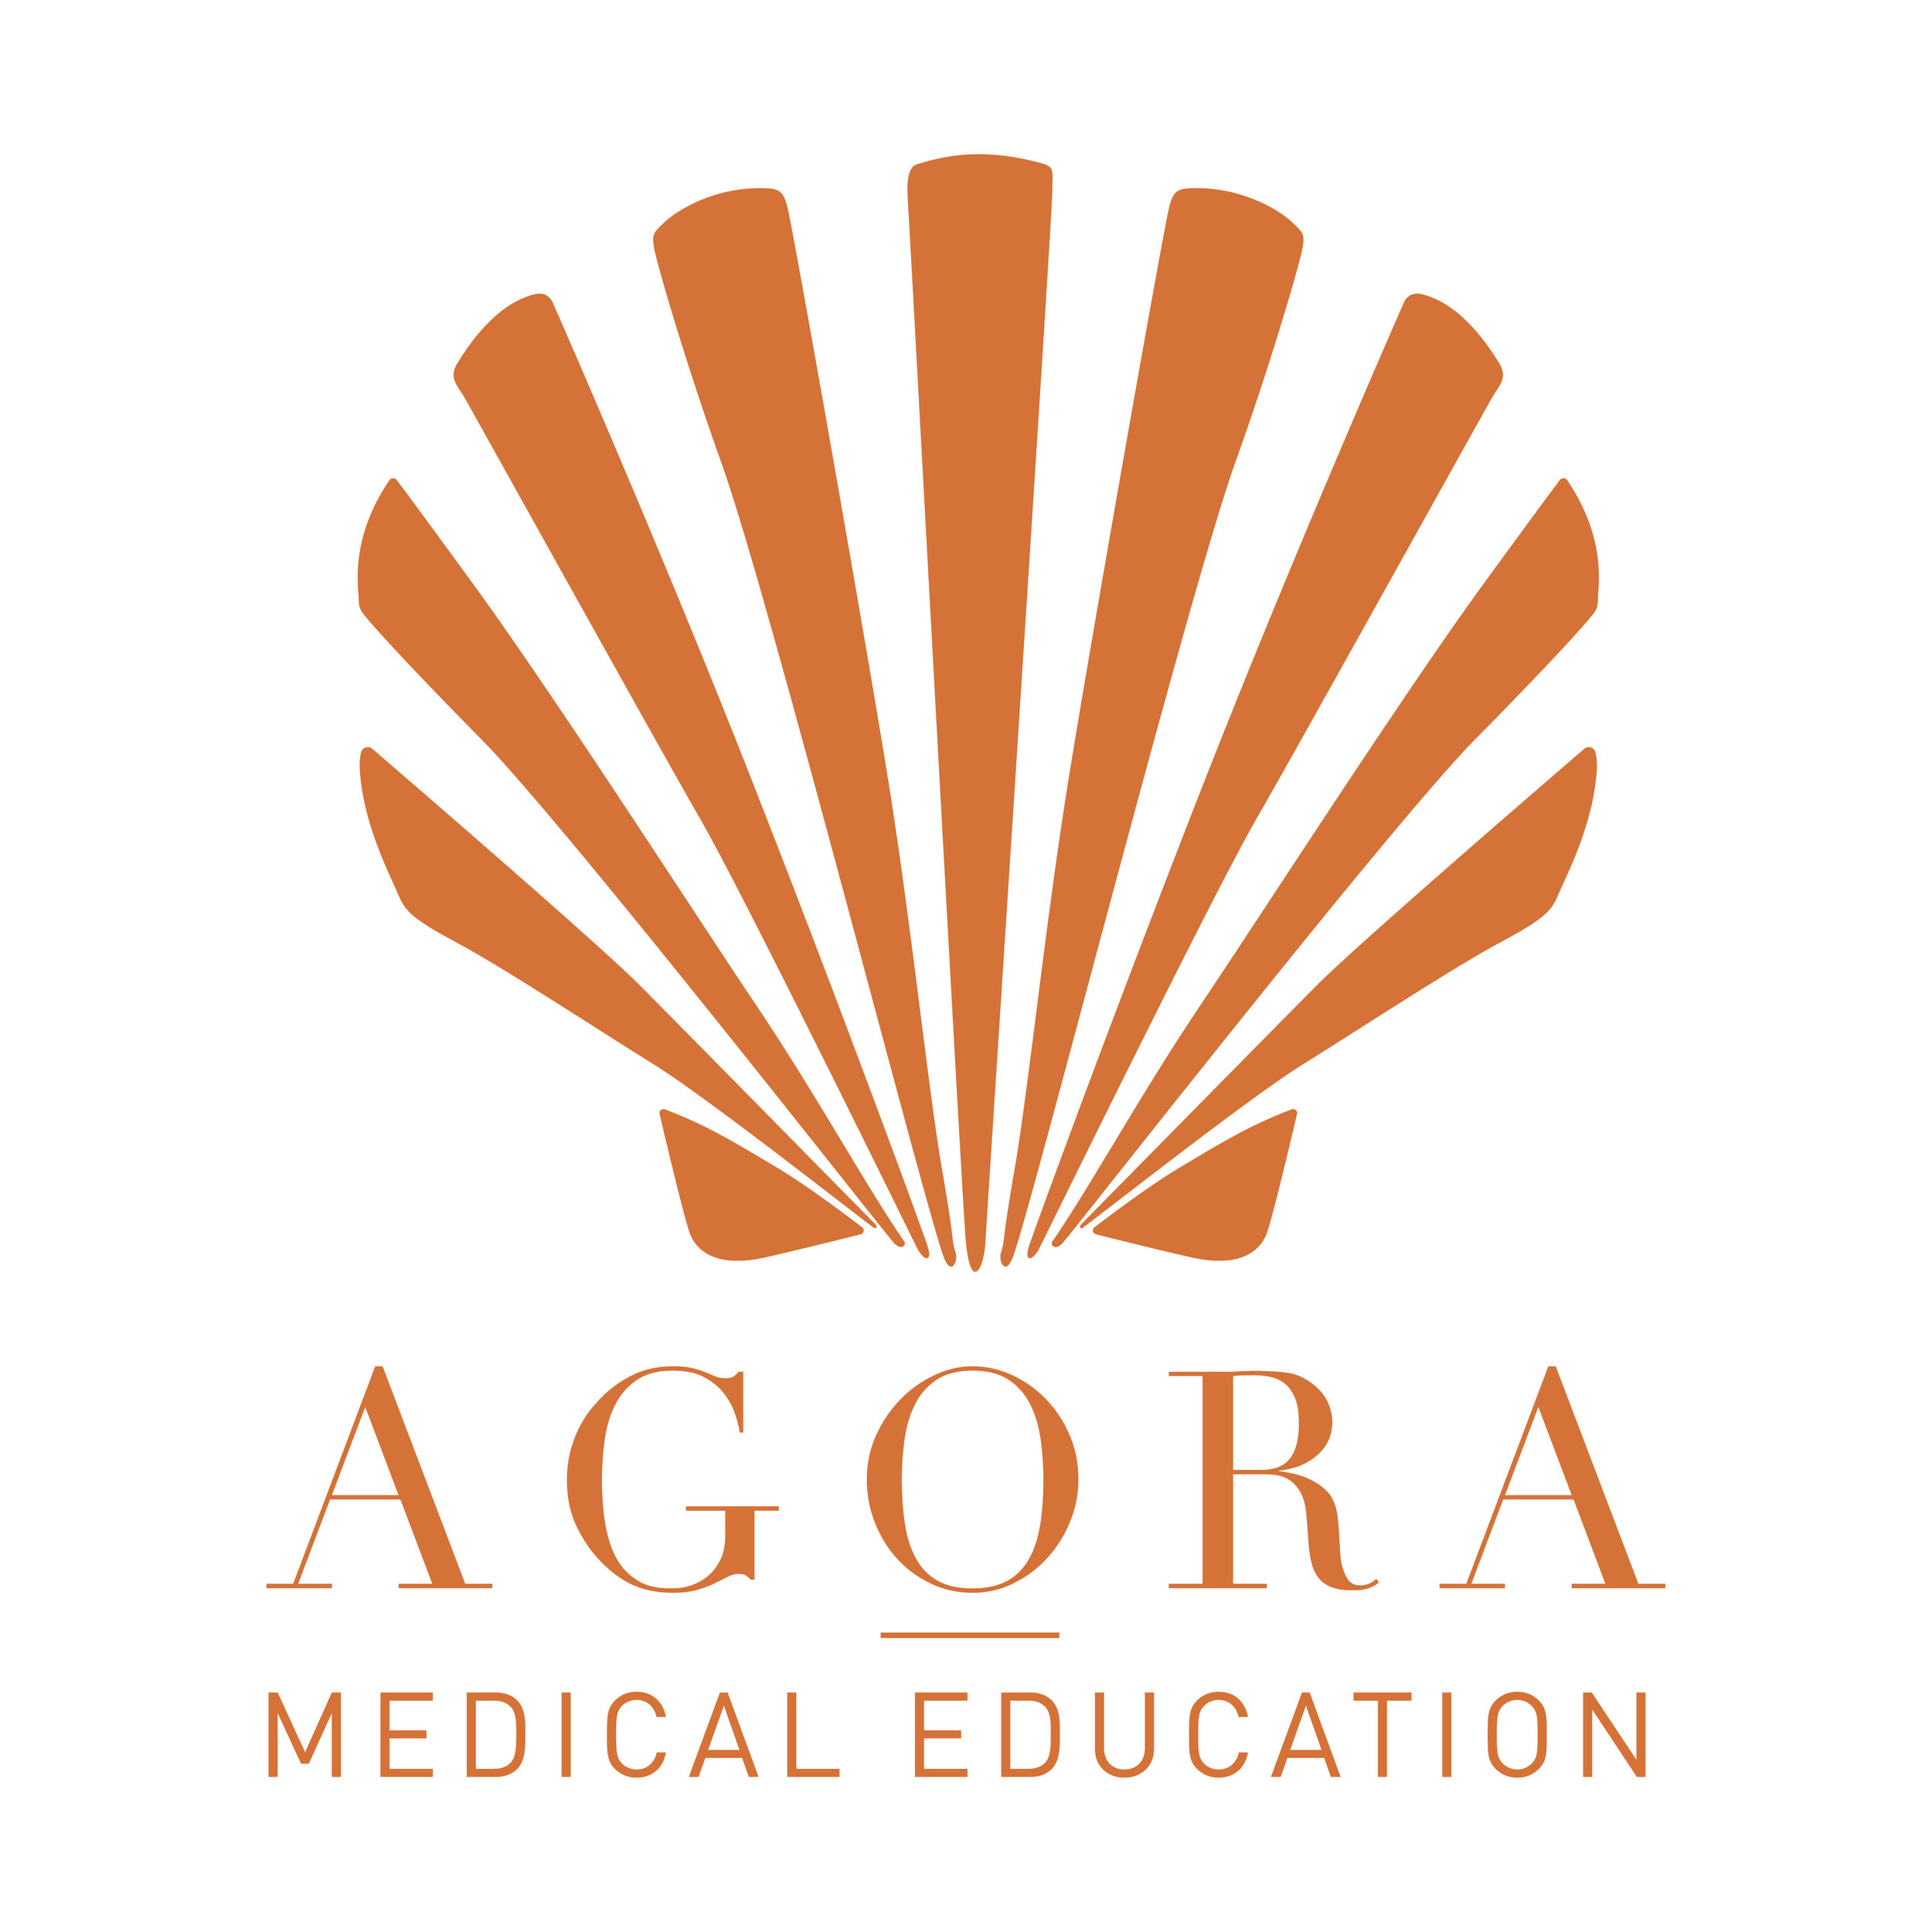 Agora_logo_Medical_Education_HR .jpg